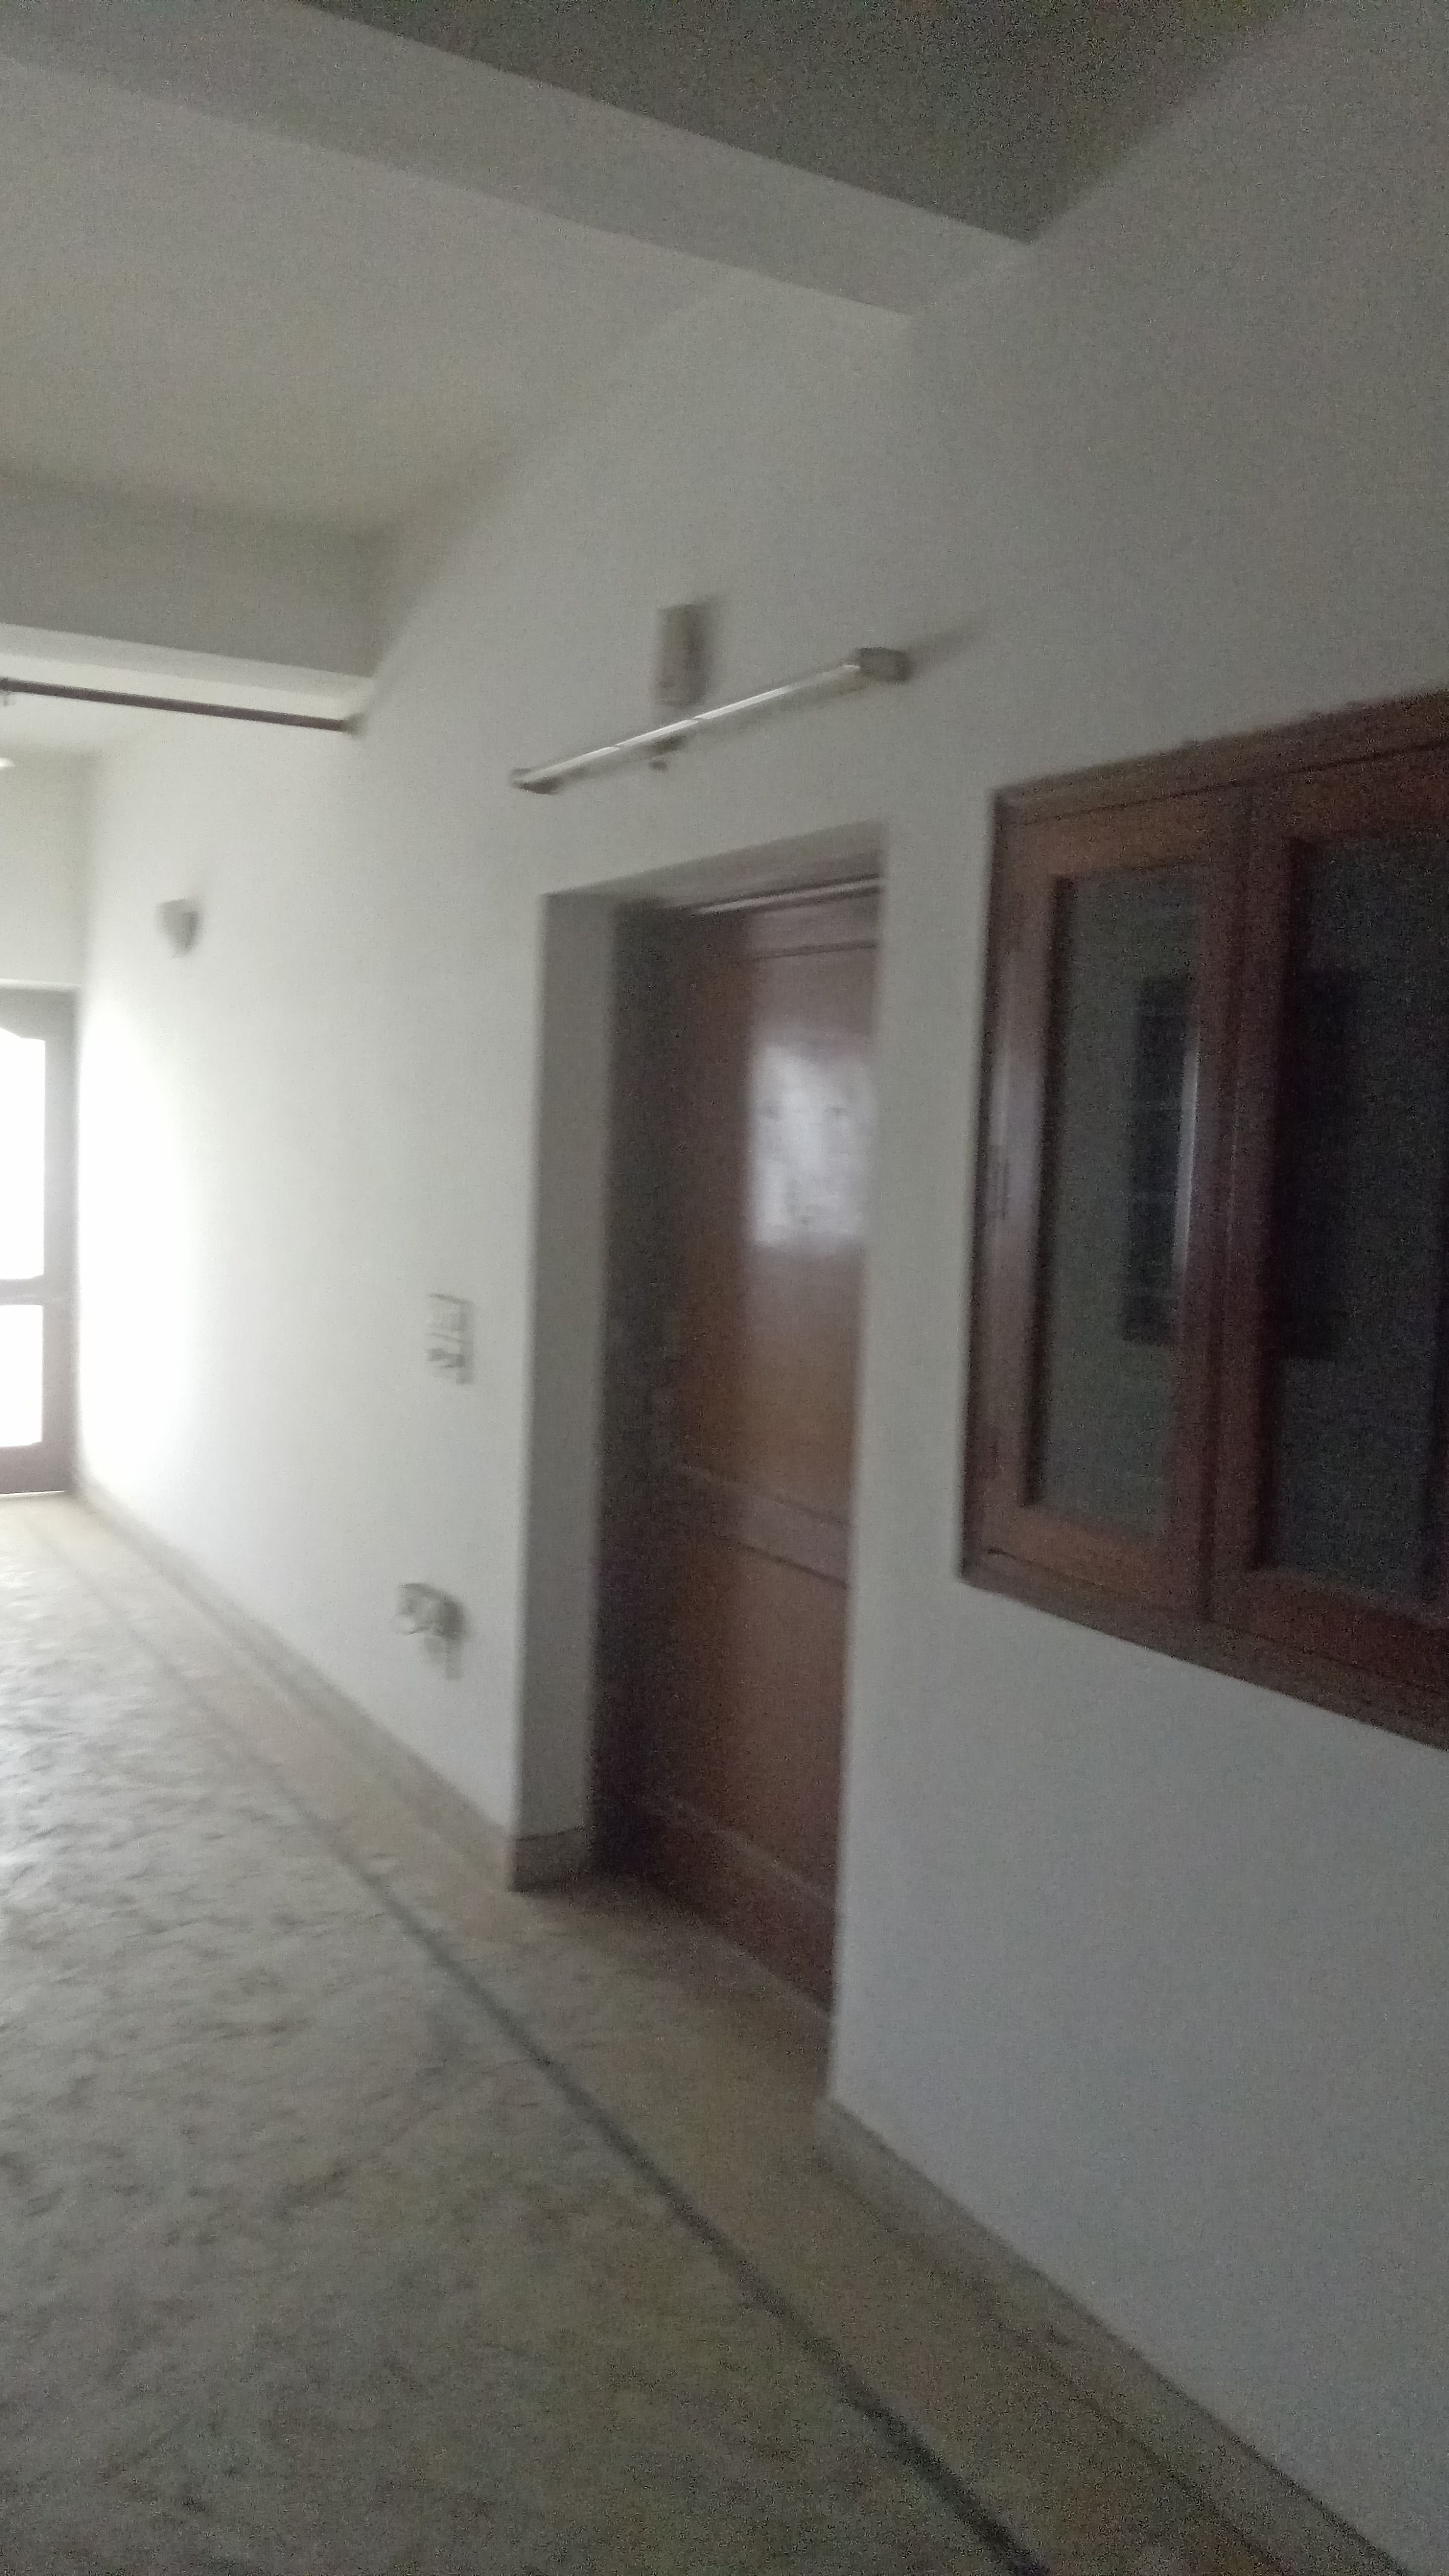 Contact Us 8510070061 Home Office Showroom Hospital Residential Commercial Building Old Renovati Office Renovation Renovation Contractor Remodeling Renovation